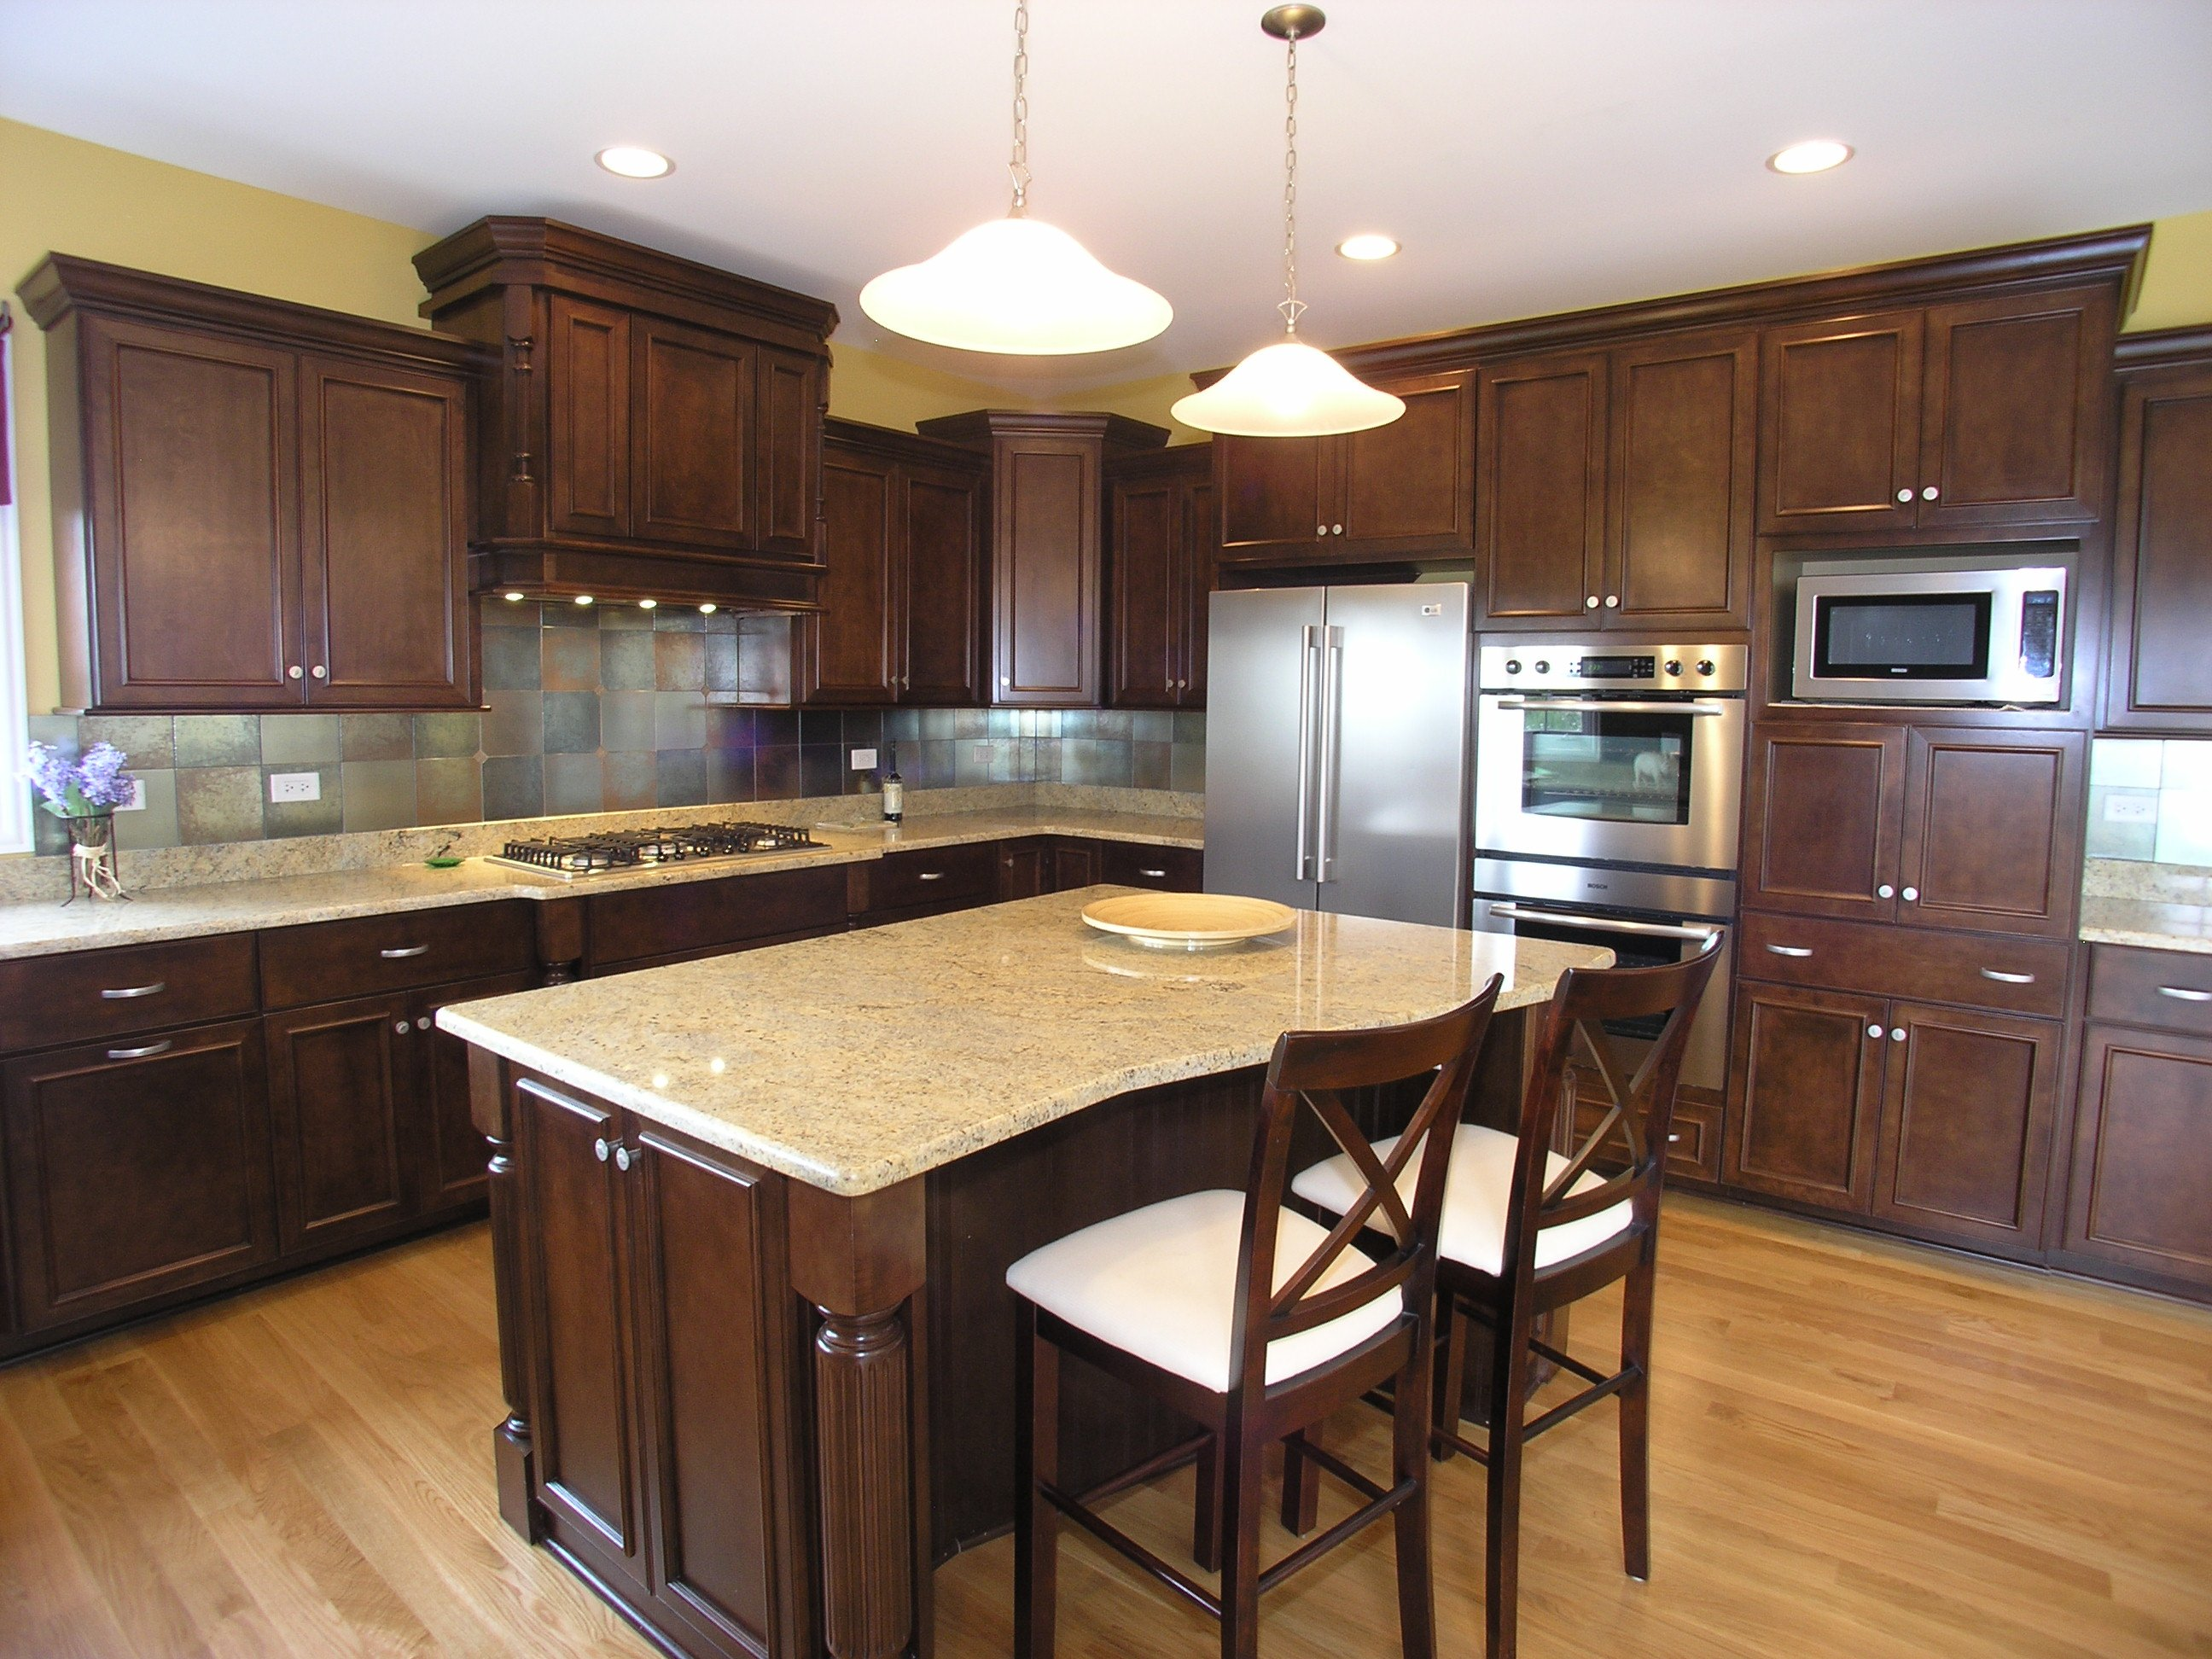 Granite Kitchen Tops Granite Kitchen Countertops My Beautiful Kitchen Renovation With